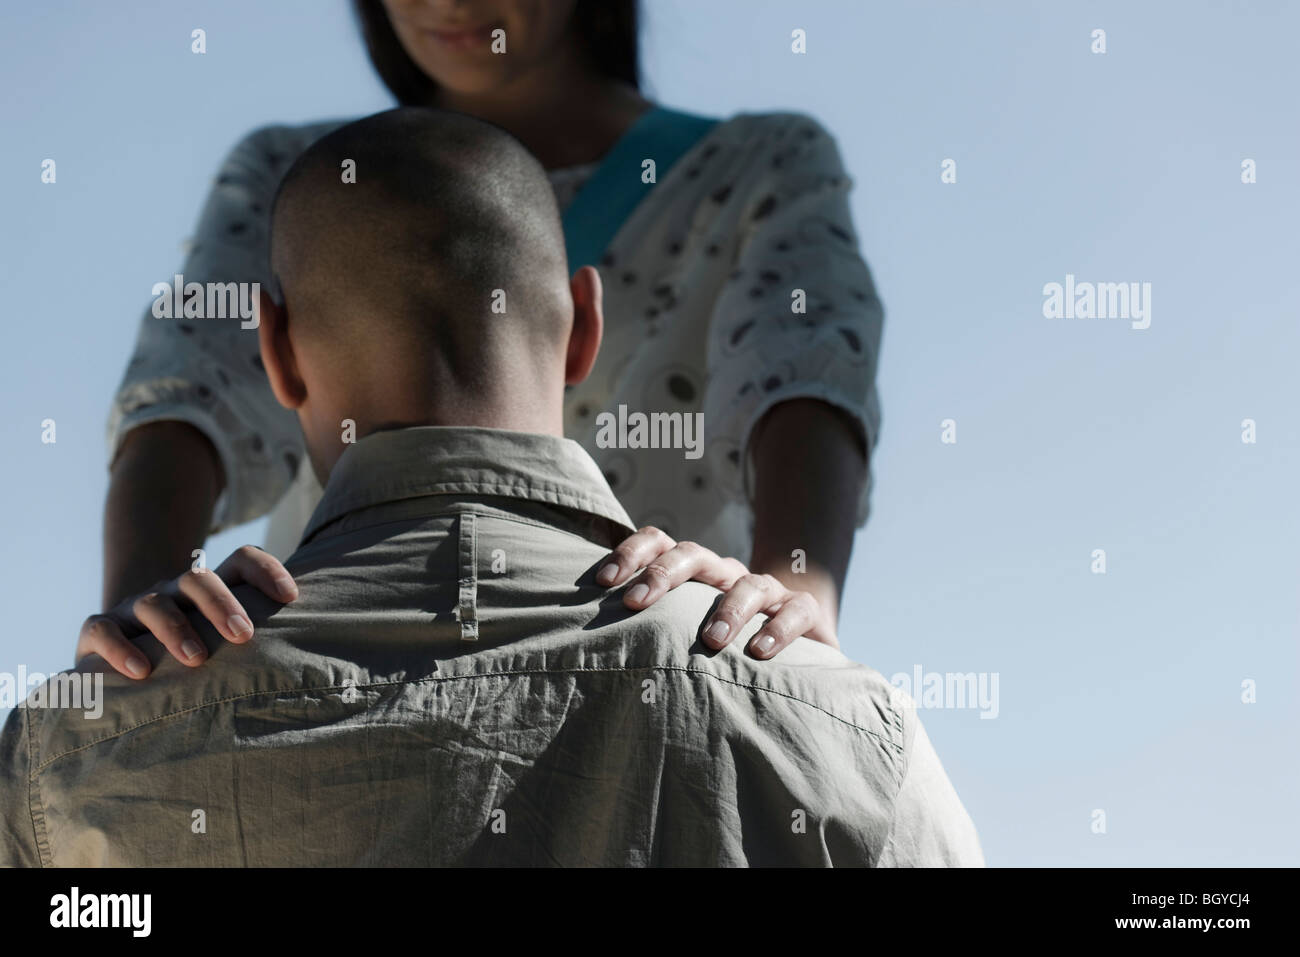 Man with head lowered, woman placing hands on his shoulders - Stock Image